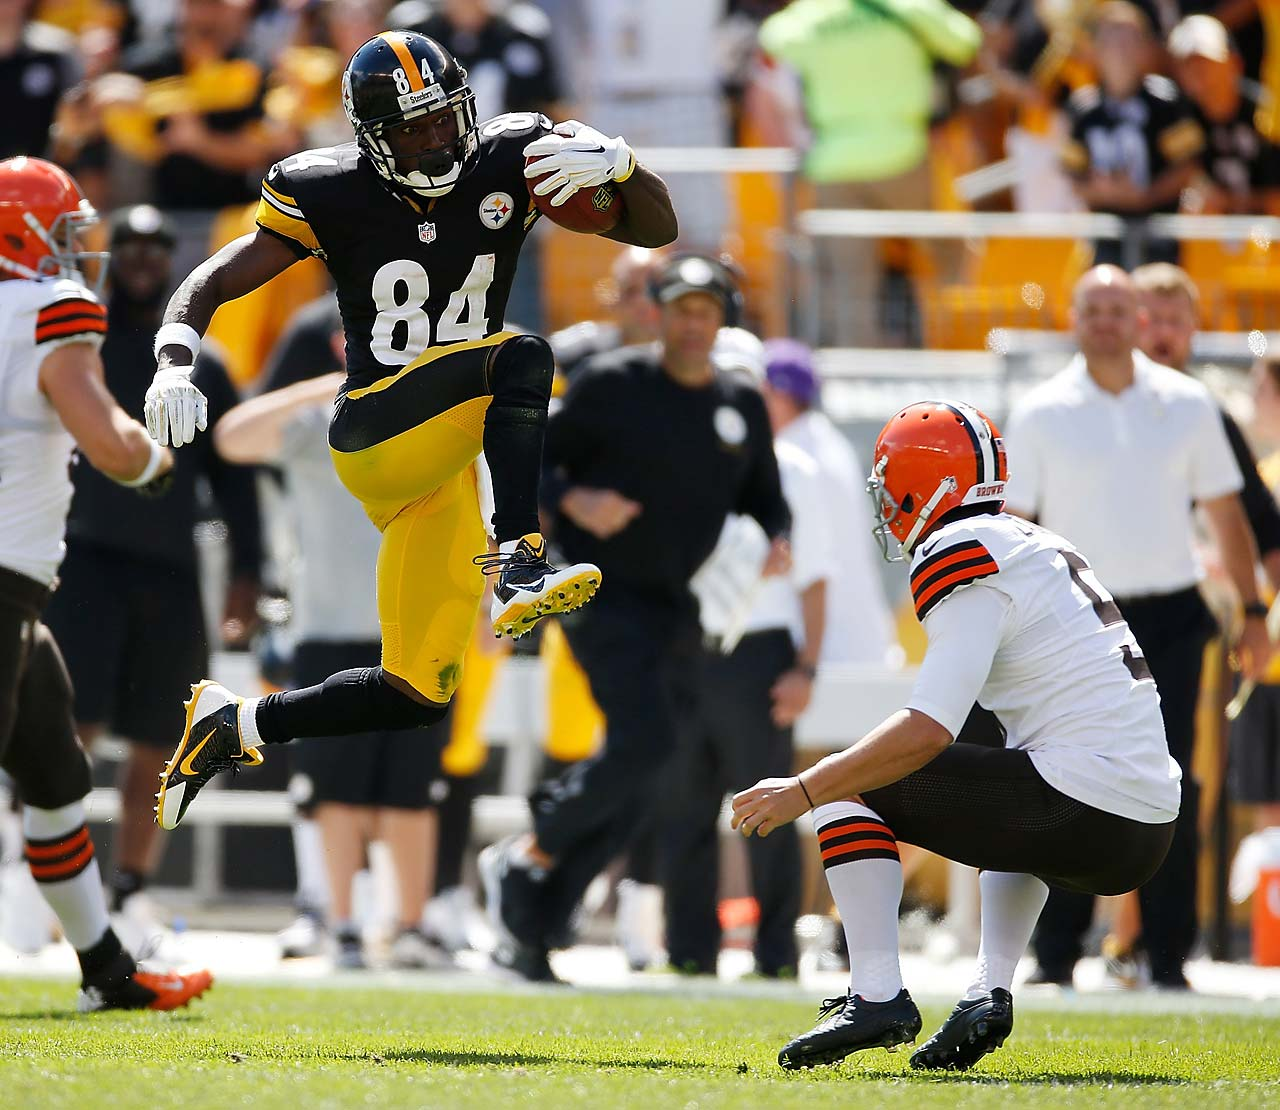 While returning a punt against Cleveland, Antonio Brown tried to hurdle Spencer Lanning and ended up drawing an unnecessary roughness penalty when his foot hit the punter in the face.